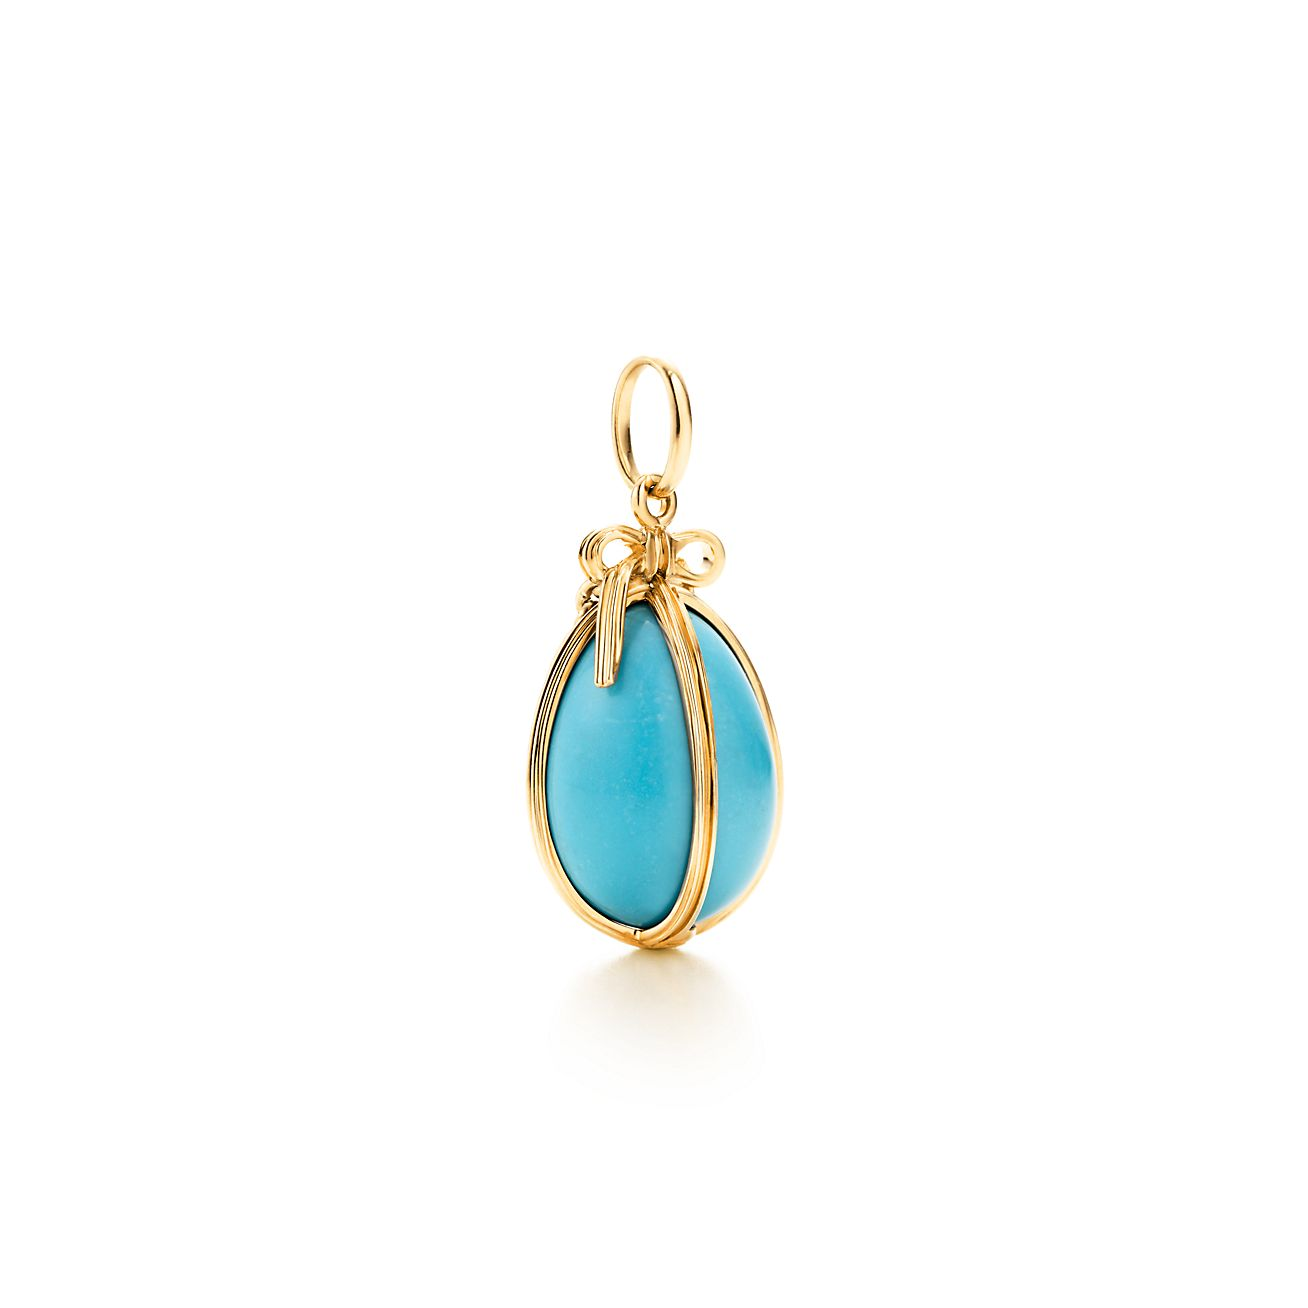 Tiffany co schlumberger egg charm of turquoise with 18k gold tiffany co aloadofball Images